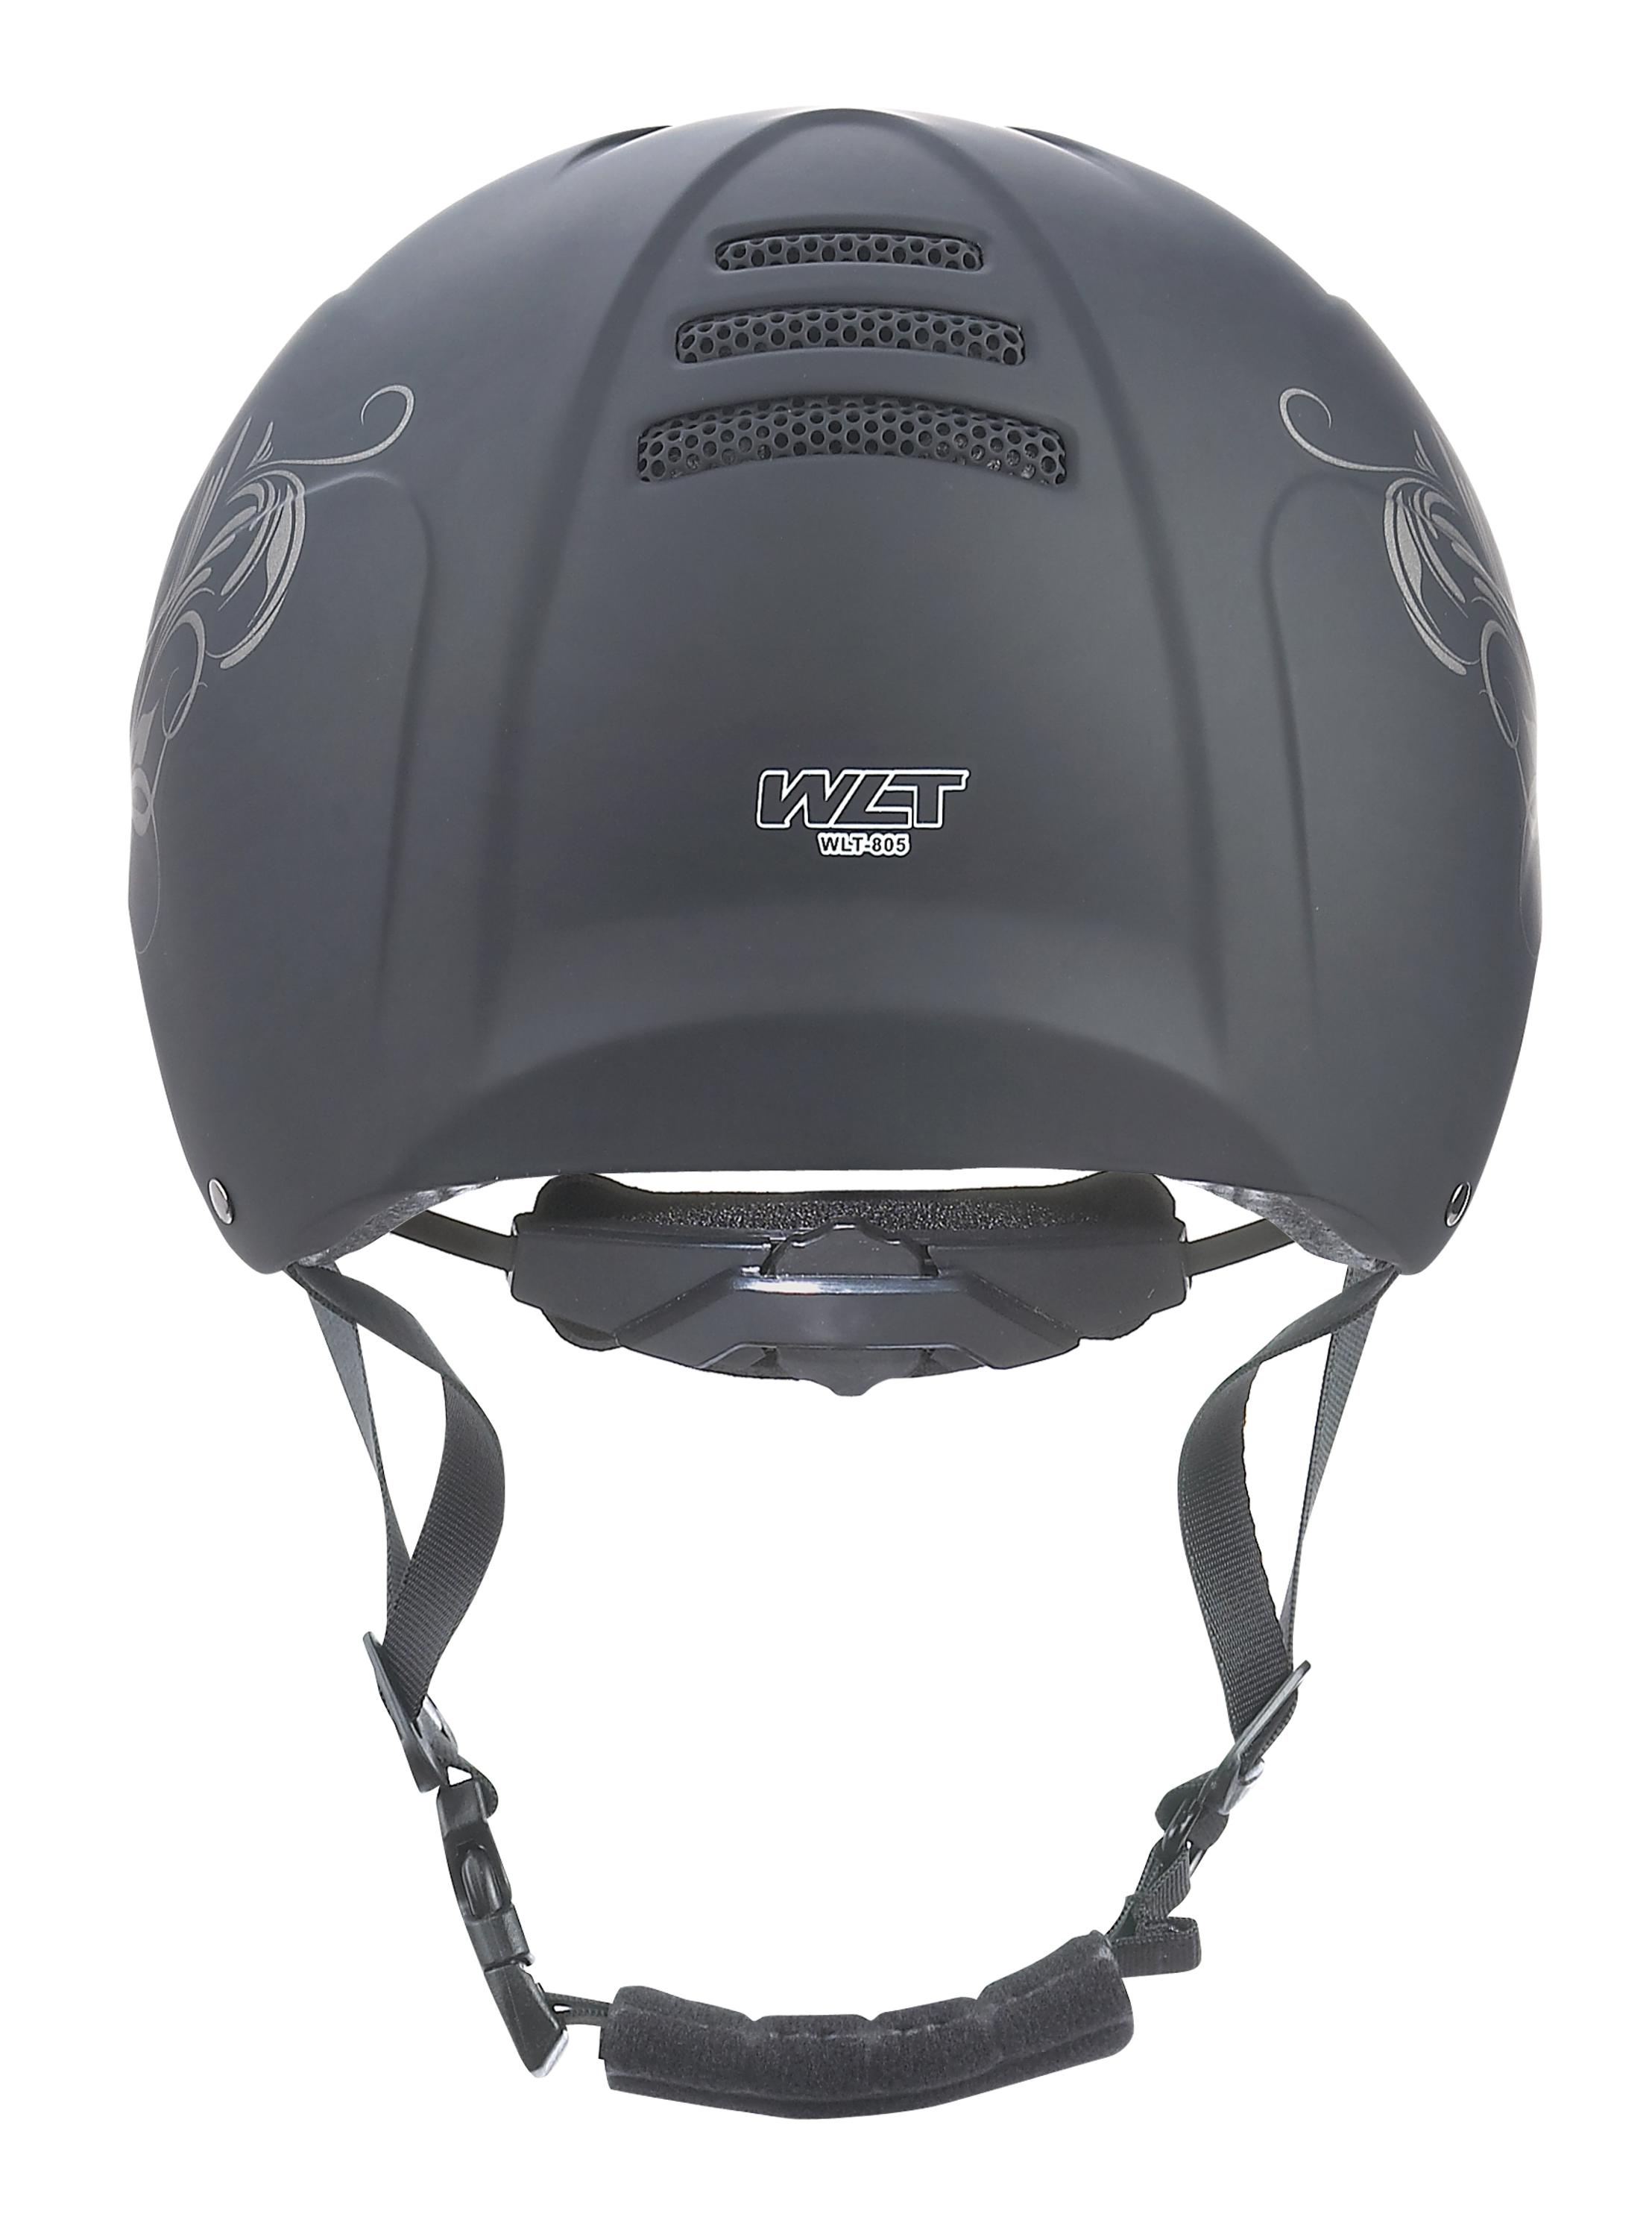 New Arrival Adjustable Equestrian Helmet popular in European Market